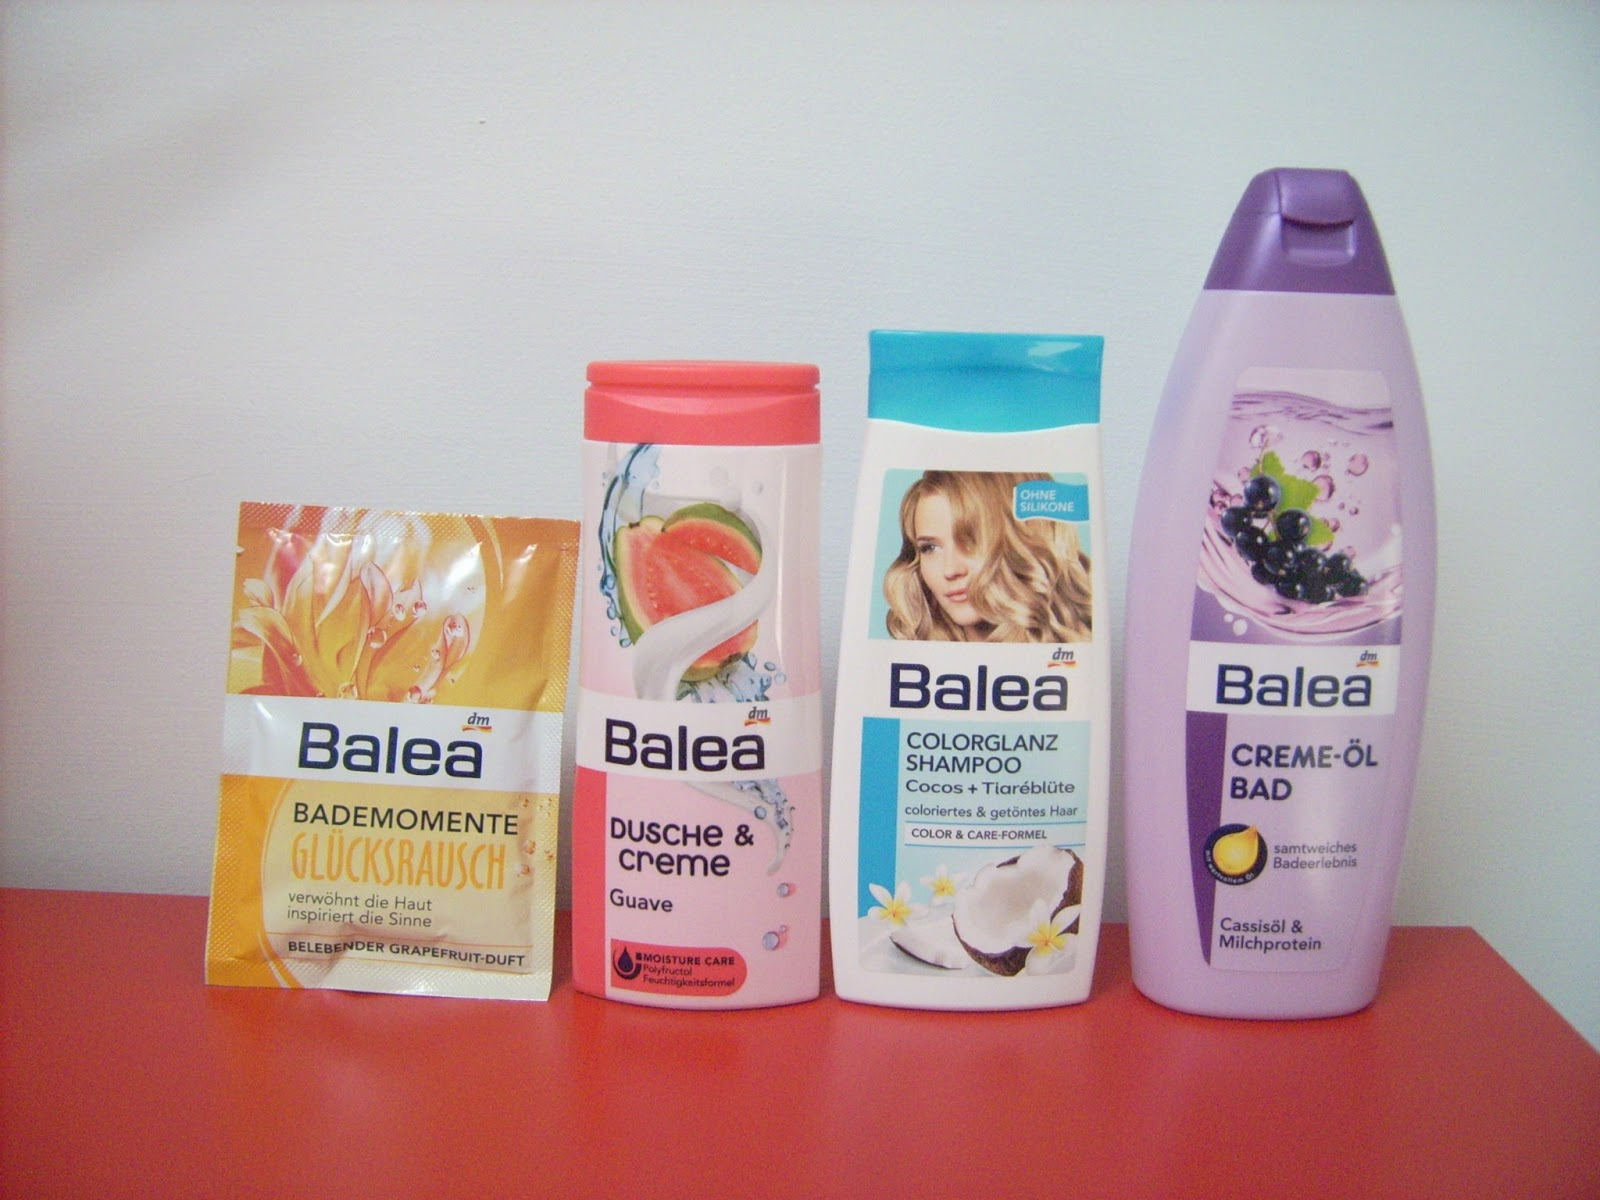 grapefruit bath salt balea, guava shower gel balea, coconut shampoo balea, bubble bath blackcurrant balea.